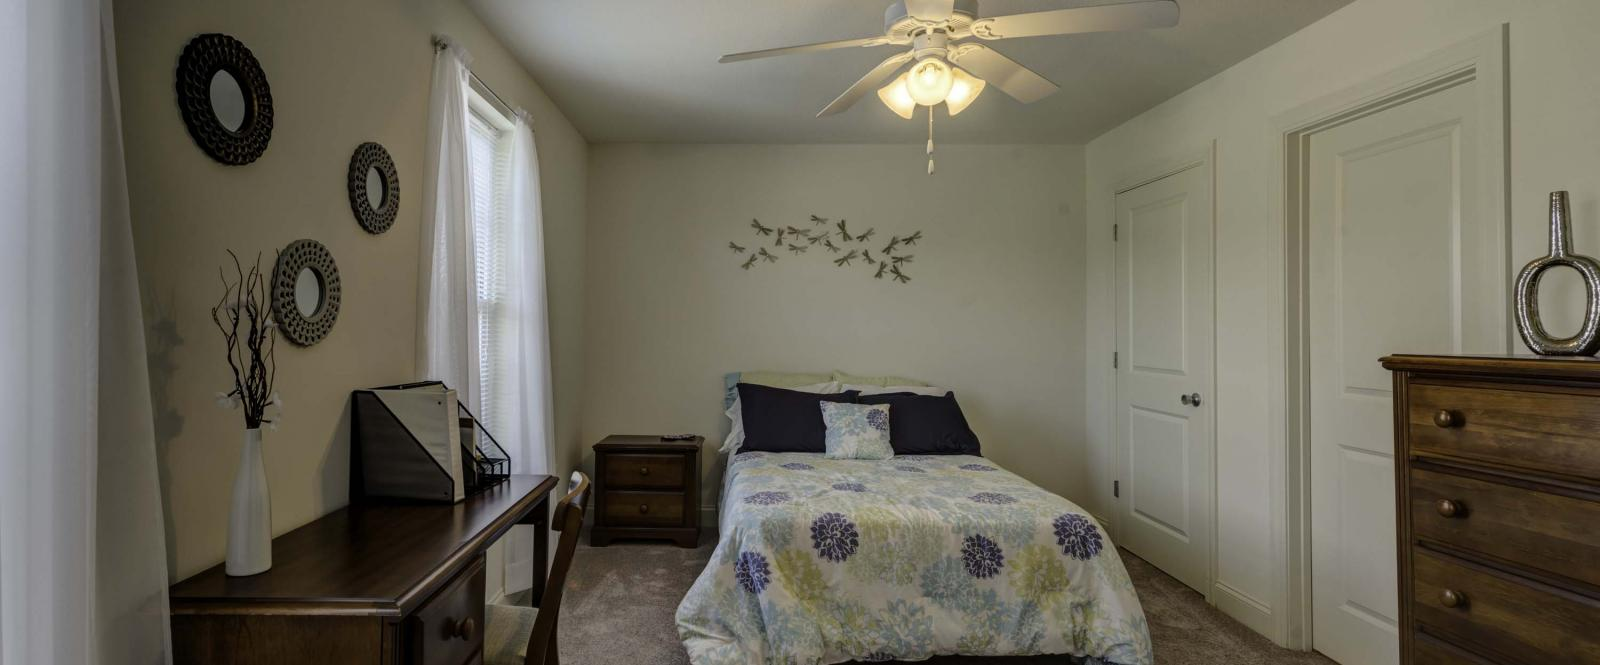 Copper-Beech-Townhomes-Auburn-Bedroom2-Unilodgers